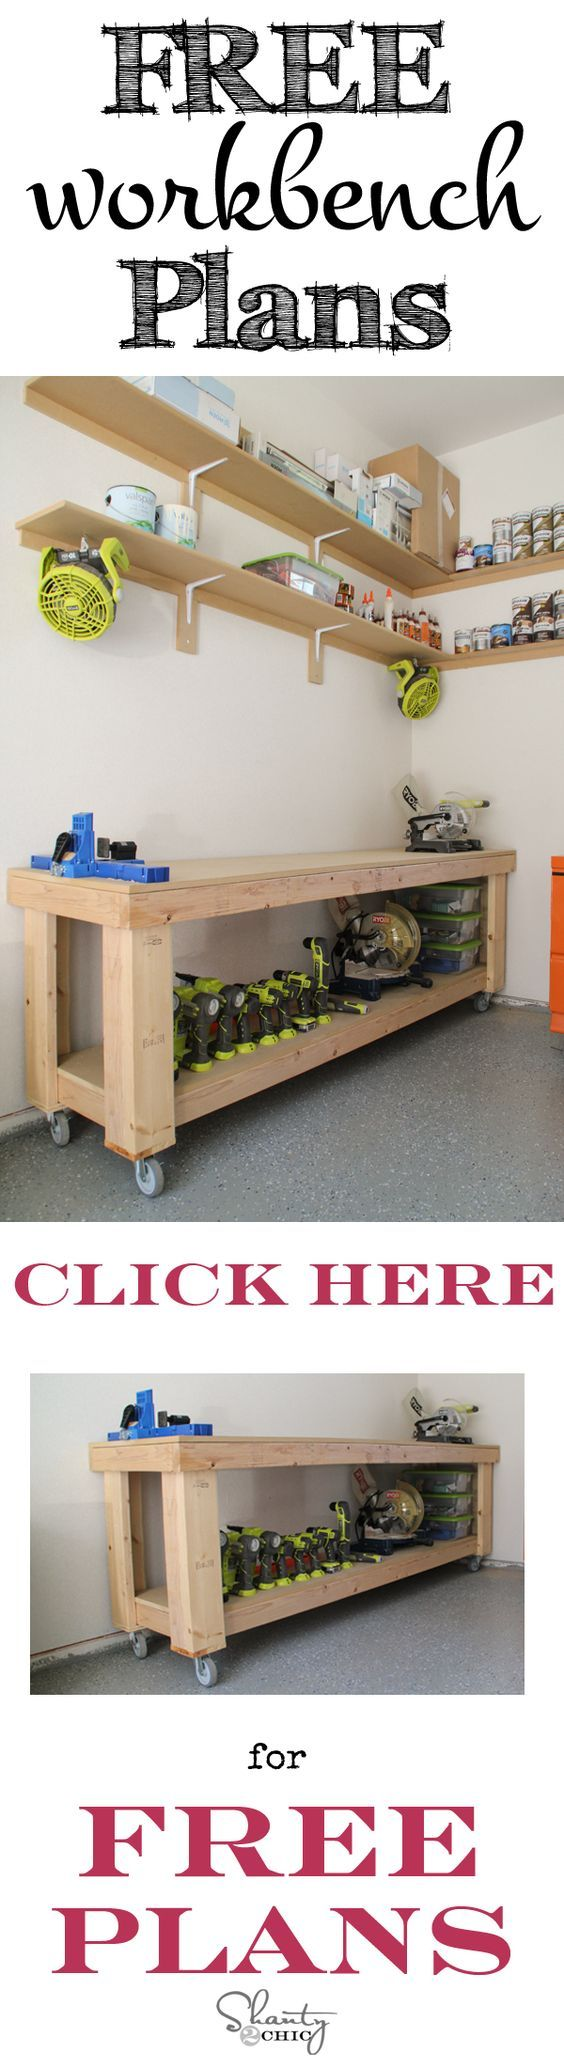 best 10 garage shelving plans ideas on pinterest building diy workbench free plans garage workbench plansworkbench ideasworkshop